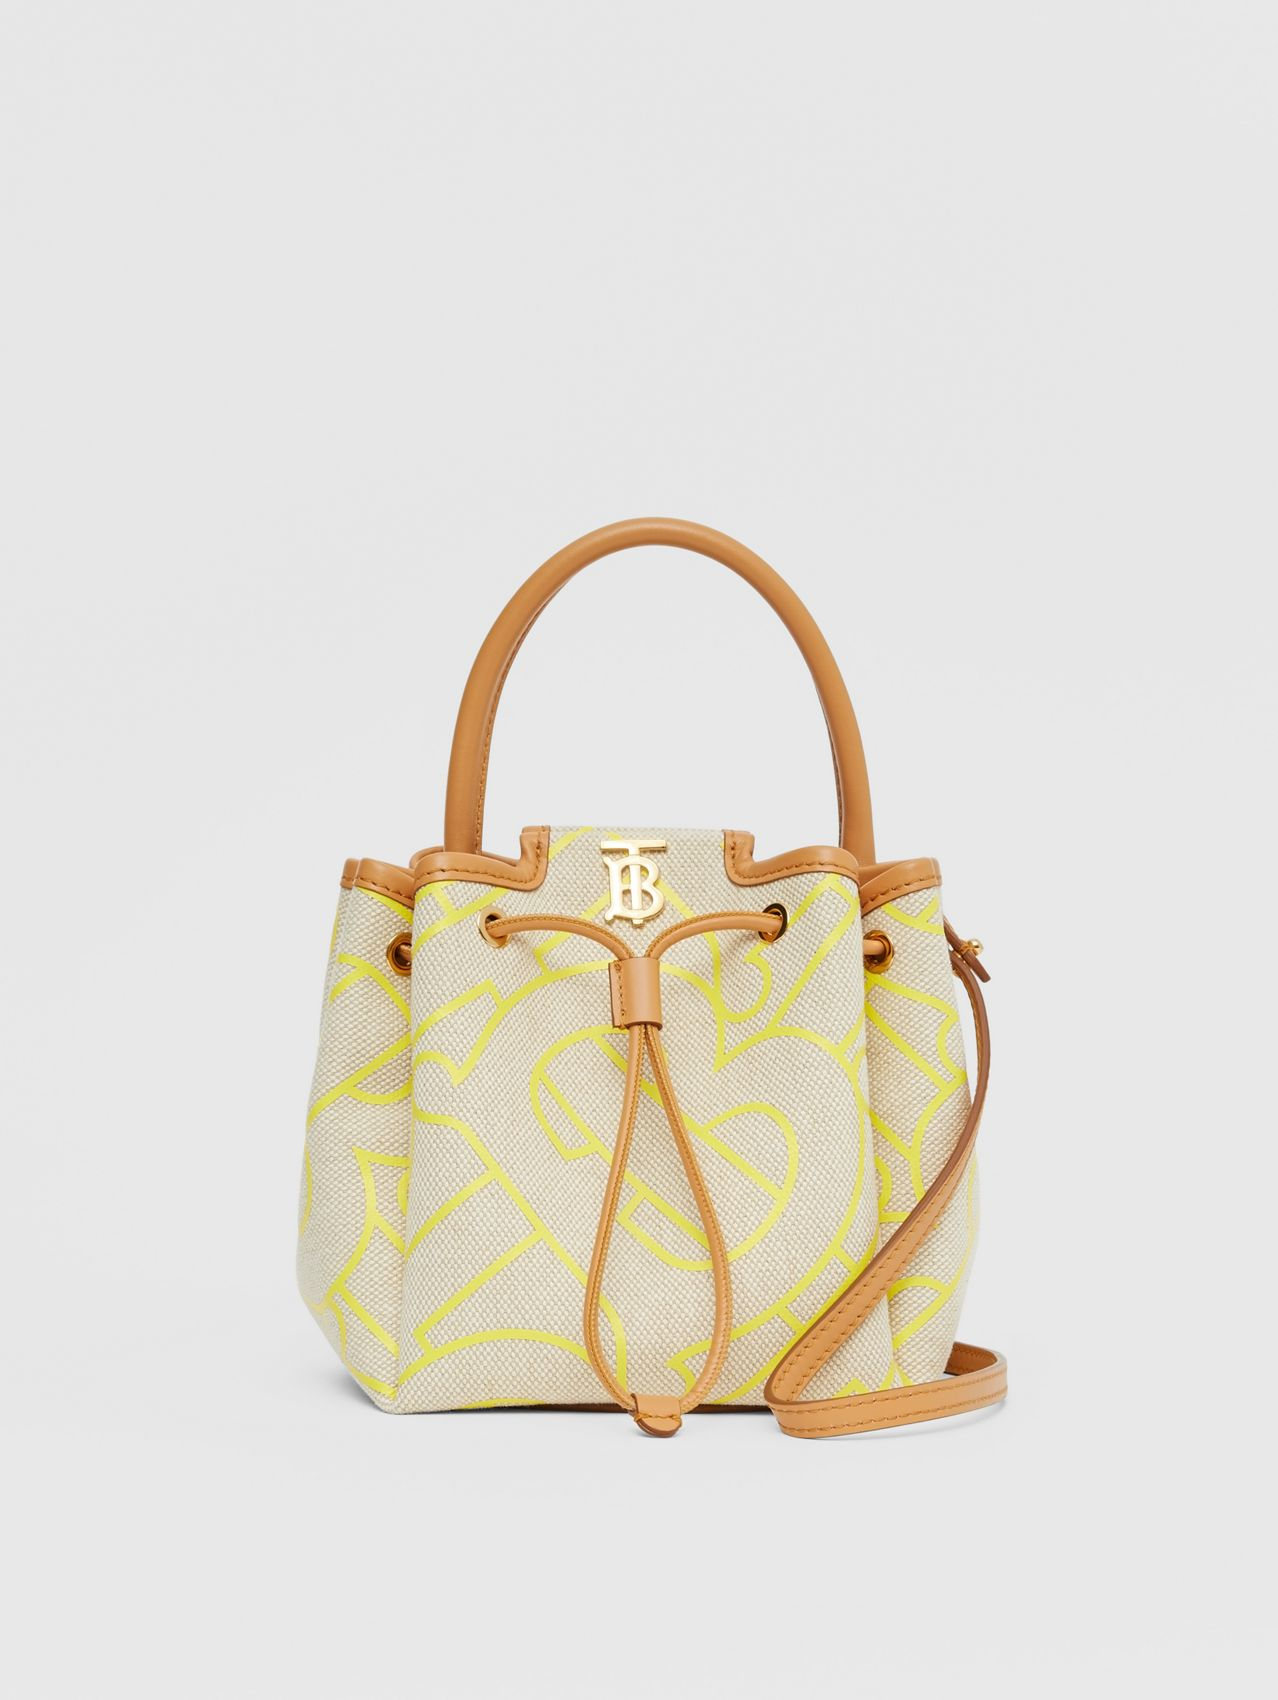 Monogram Motif Canvas and Leather Bucket Bag in Natural/yellow